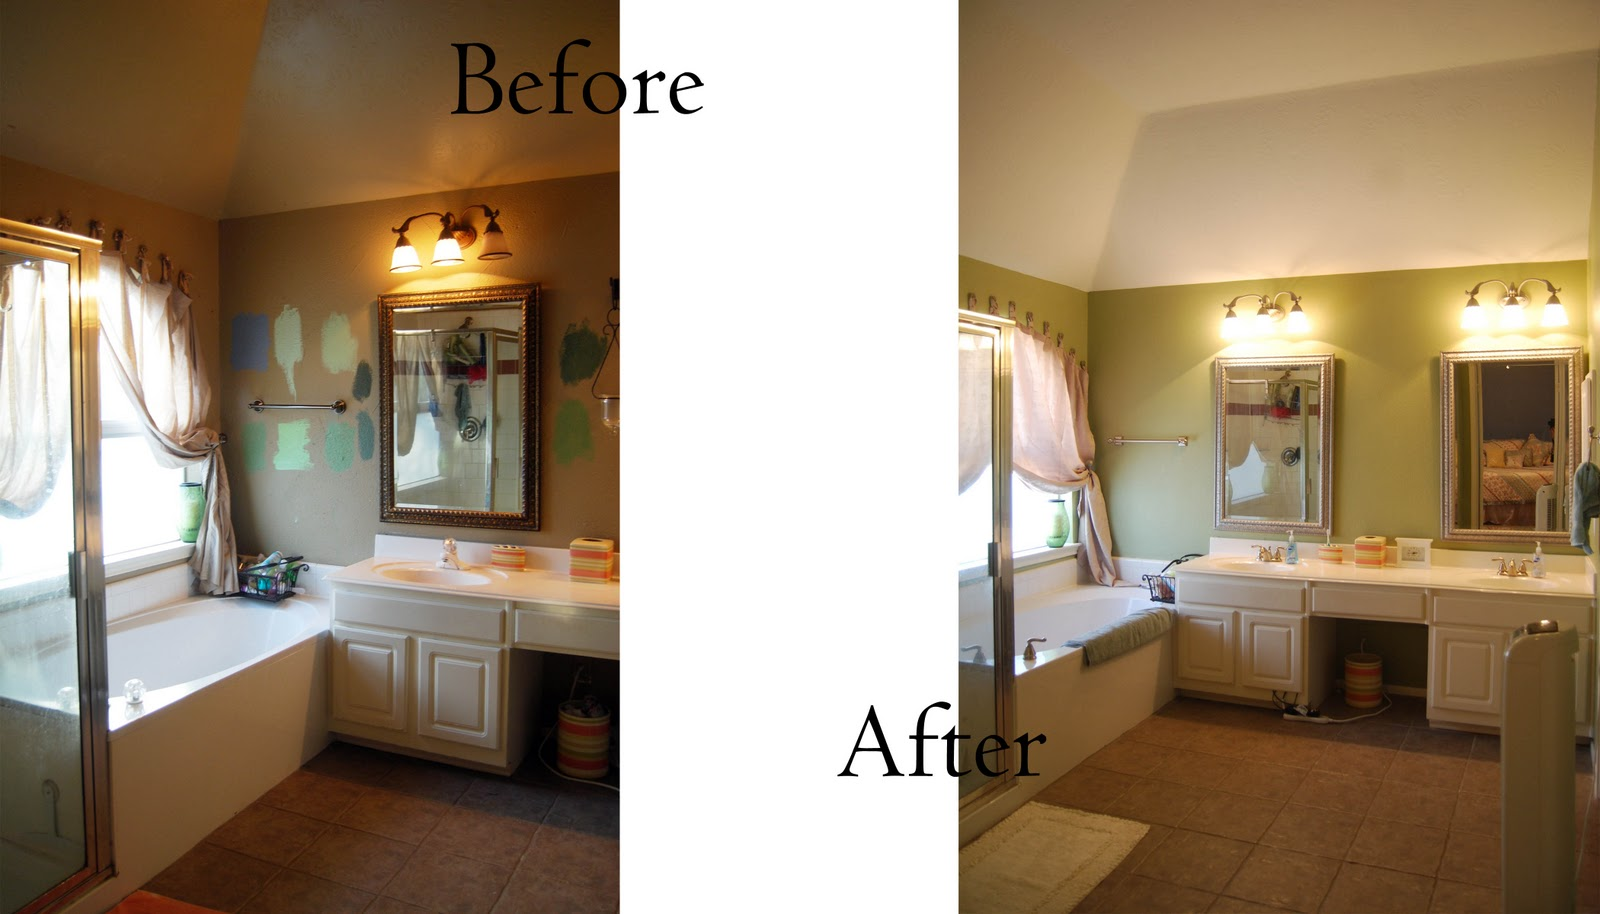 HGTV Bathroom Makeovers Before and After Photos